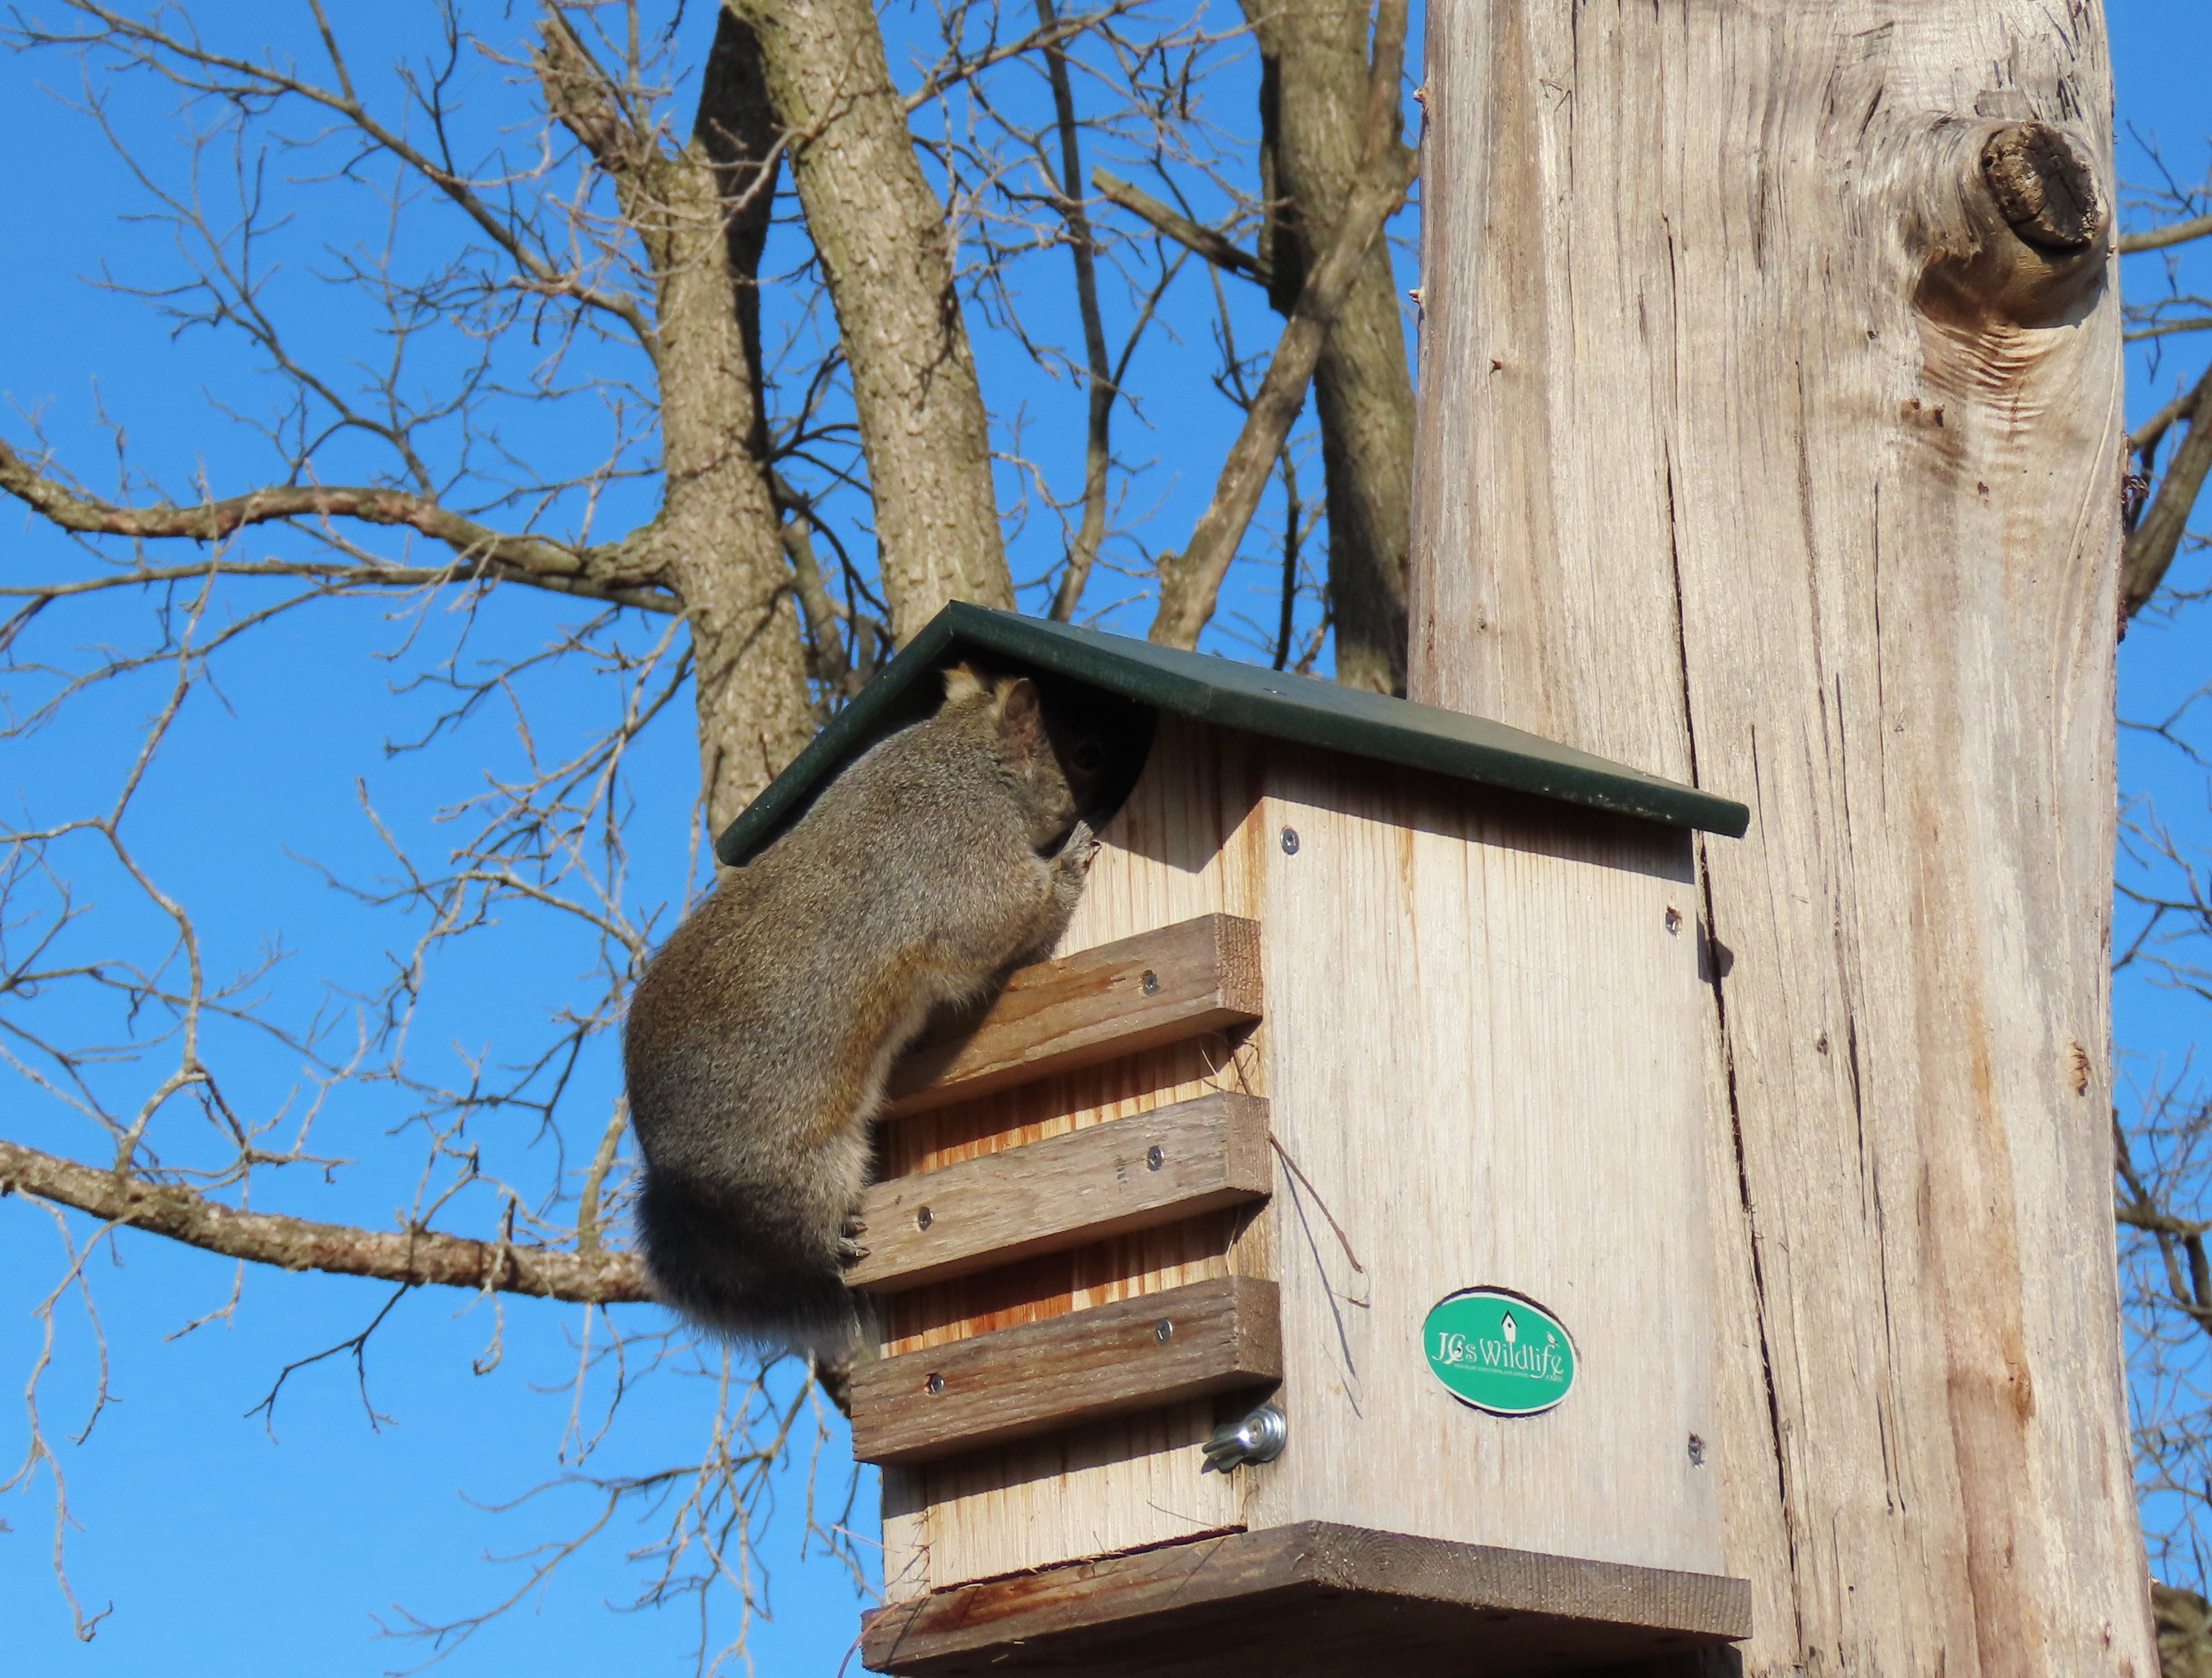 A squirrel looks into a nest box feeder